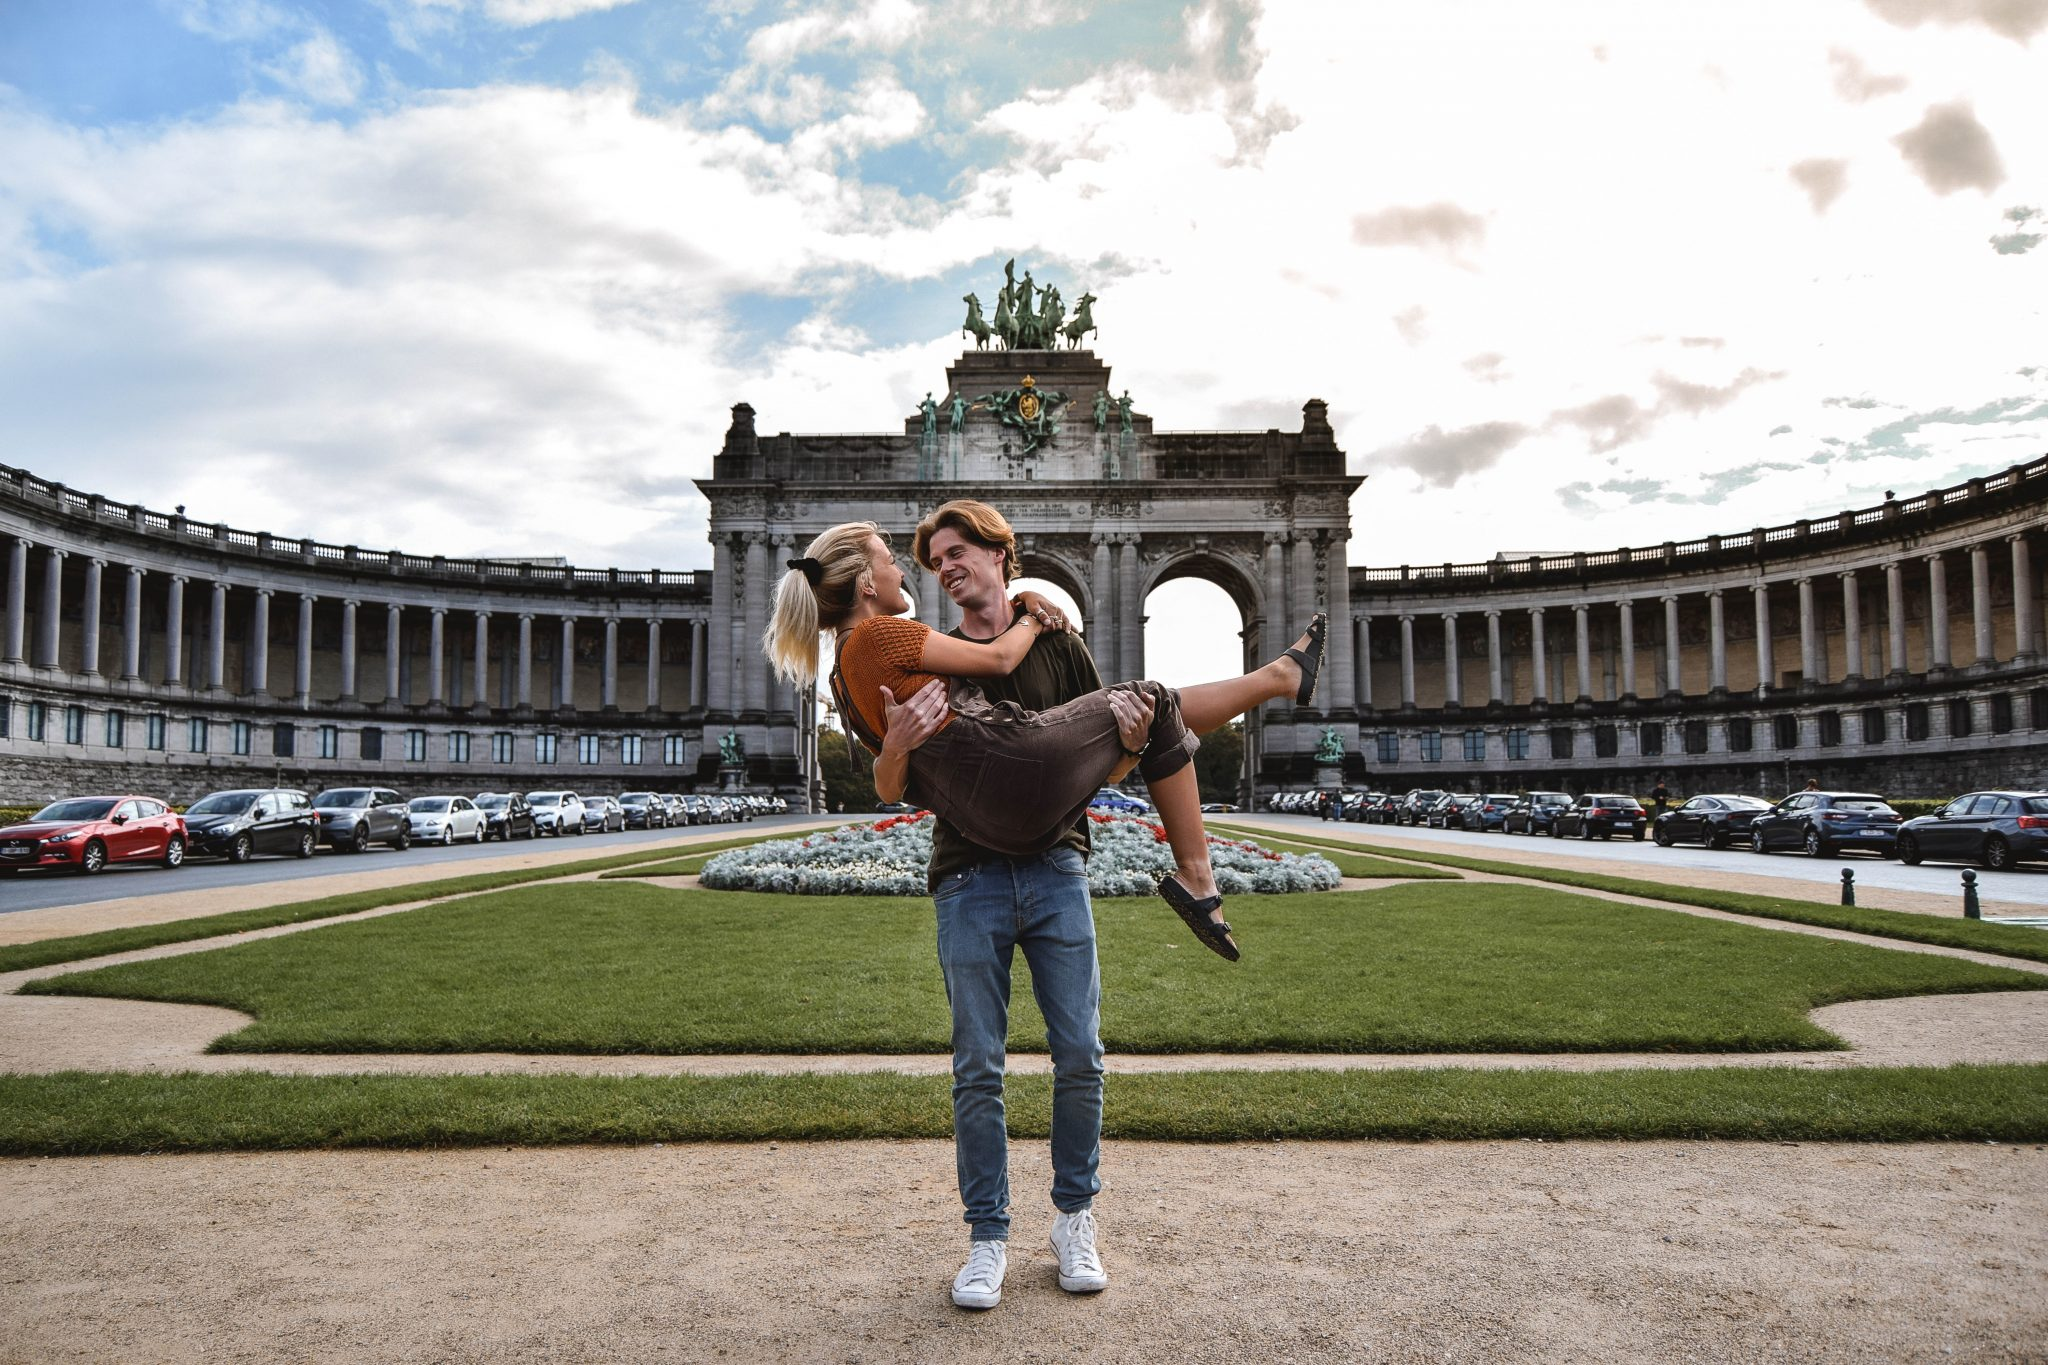 Wanderers & Warriors - Charlie & Lauren UK Travel Couple - Things To Do In Brussels In A Weekend - Parc du Cinquantenaire Brussels